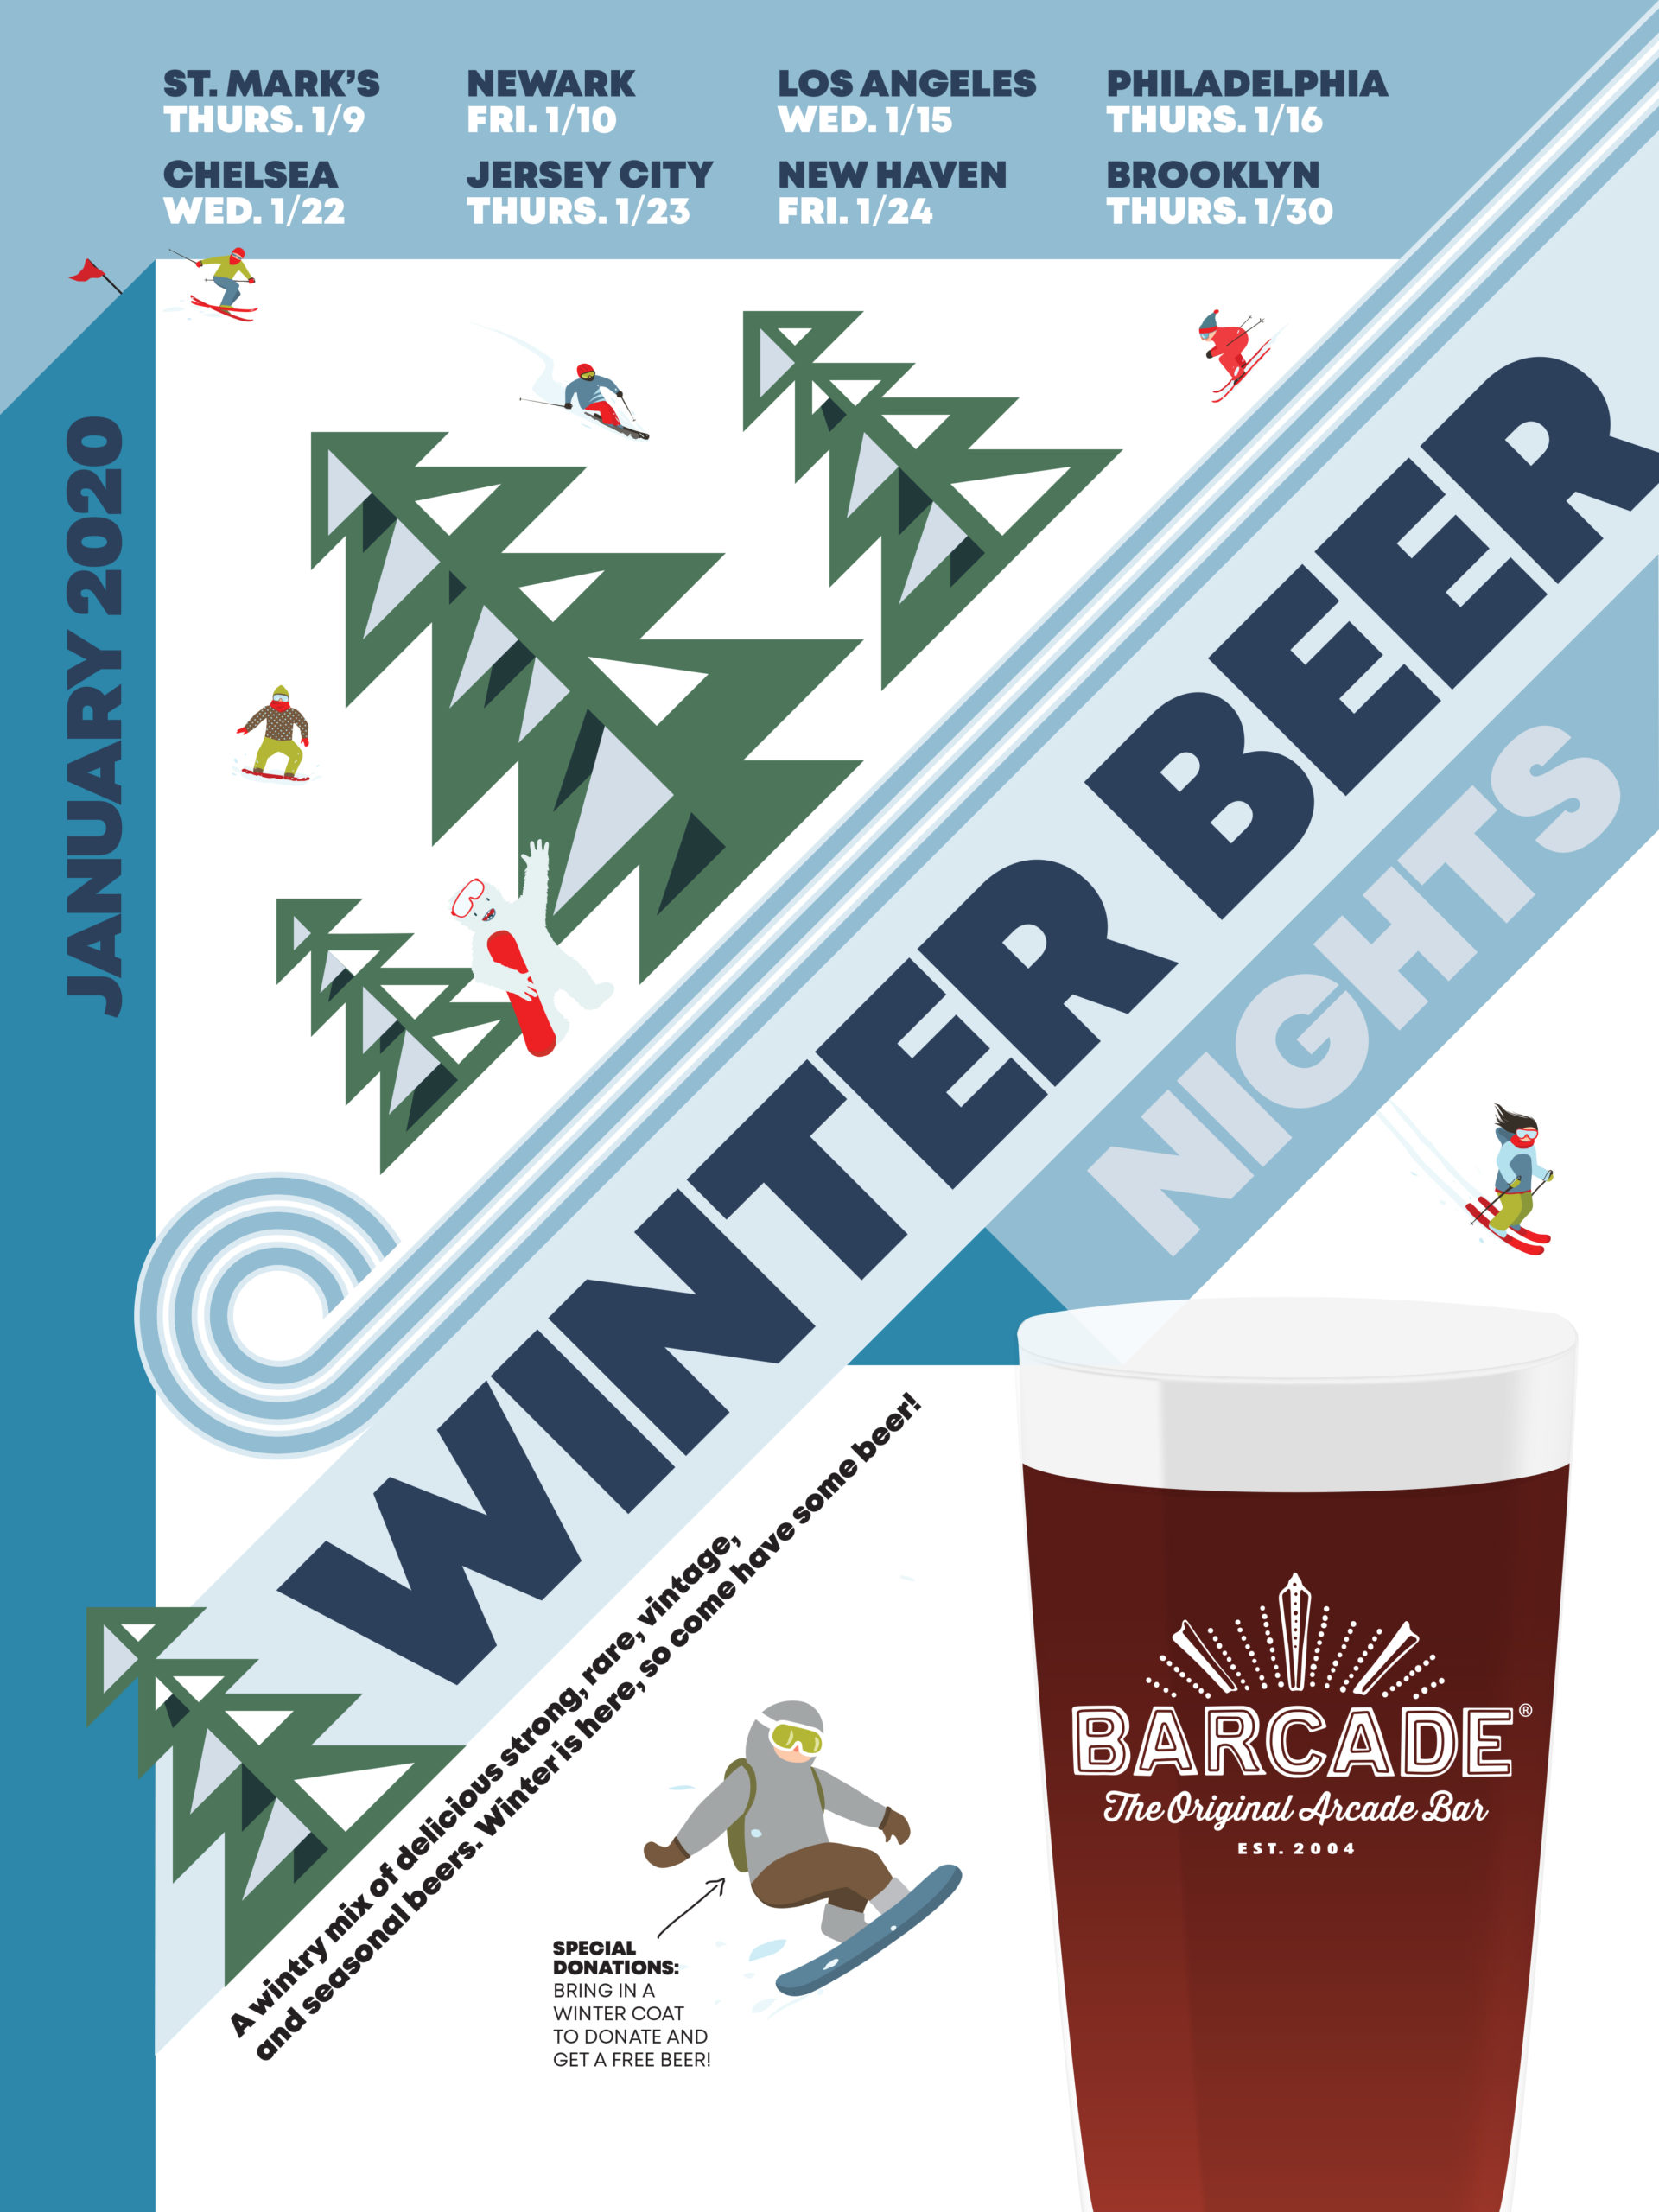 Winter Beer Night at Barcade on Thursday, January 30th 2020 in Williamsburg, Brooklyn